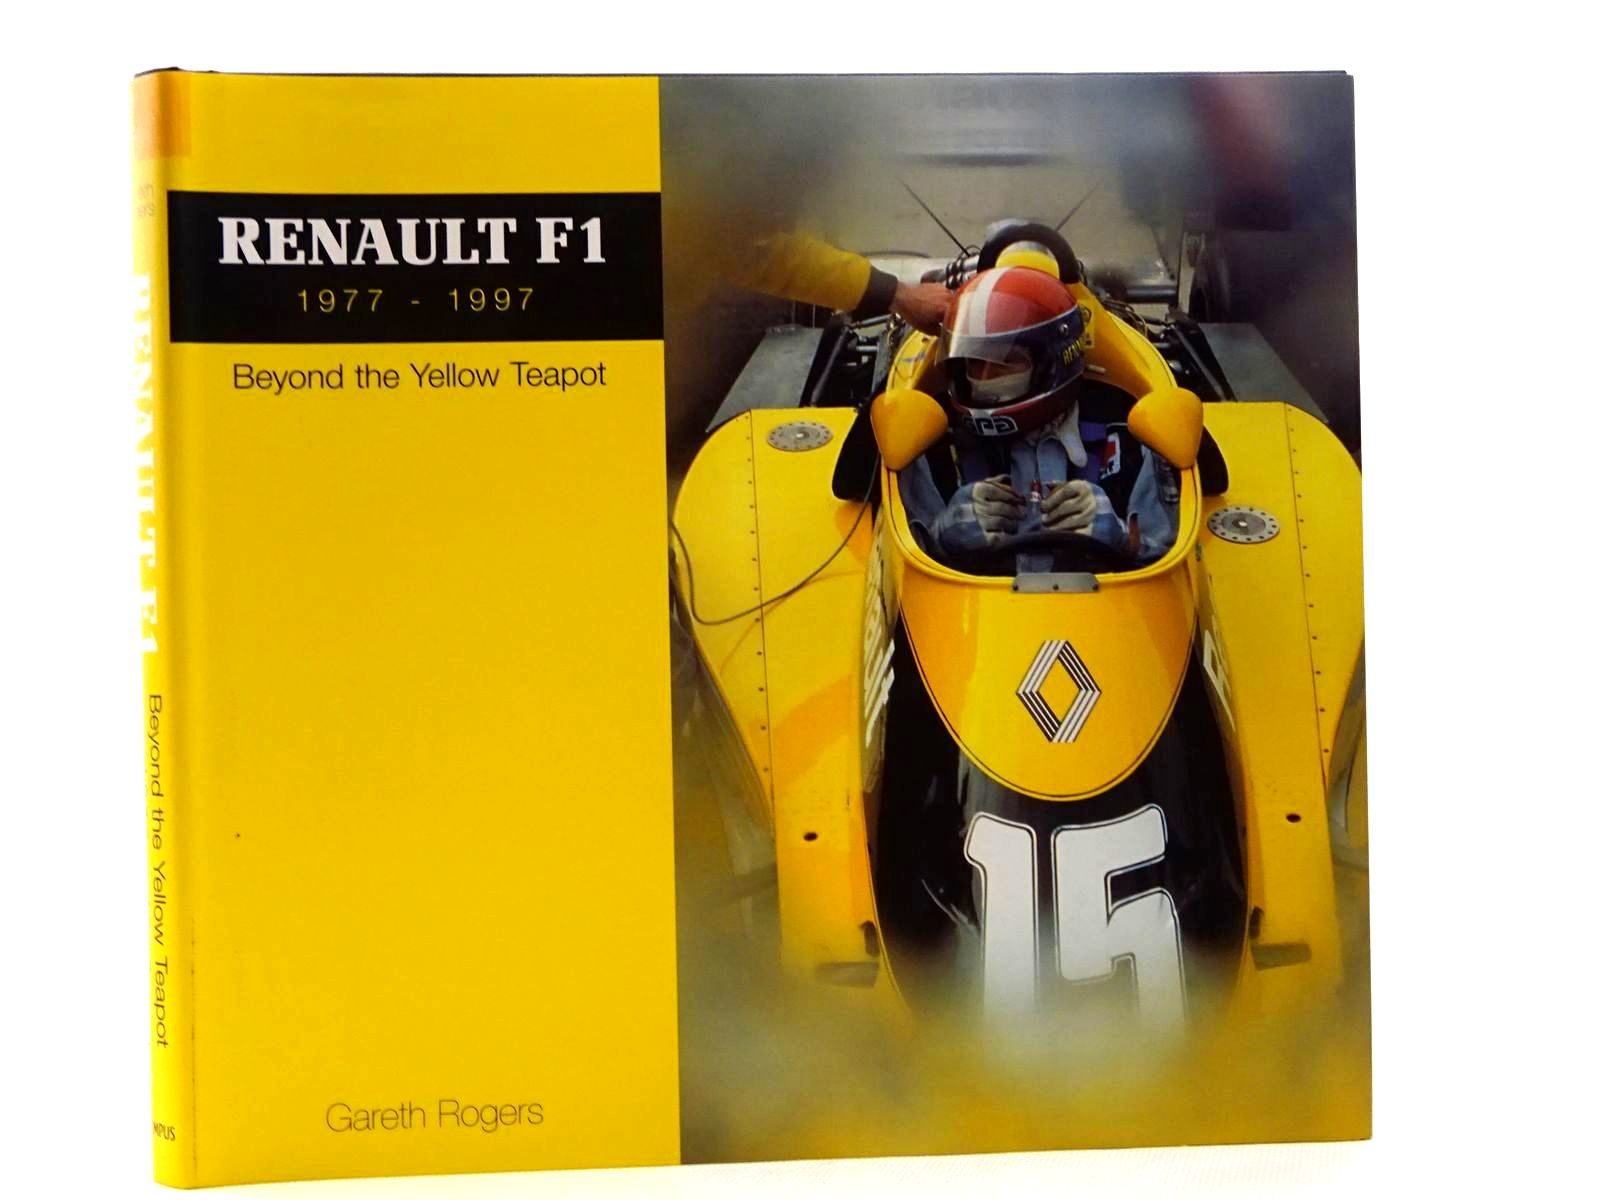 Photo of RENAULT F1 1977-1997 BEYOND THE YELLOW TEAPOT written by Rogers, Gareth published by Tempus (STOCK CODE: 1610412)  for sale by Stella & Rose's Books